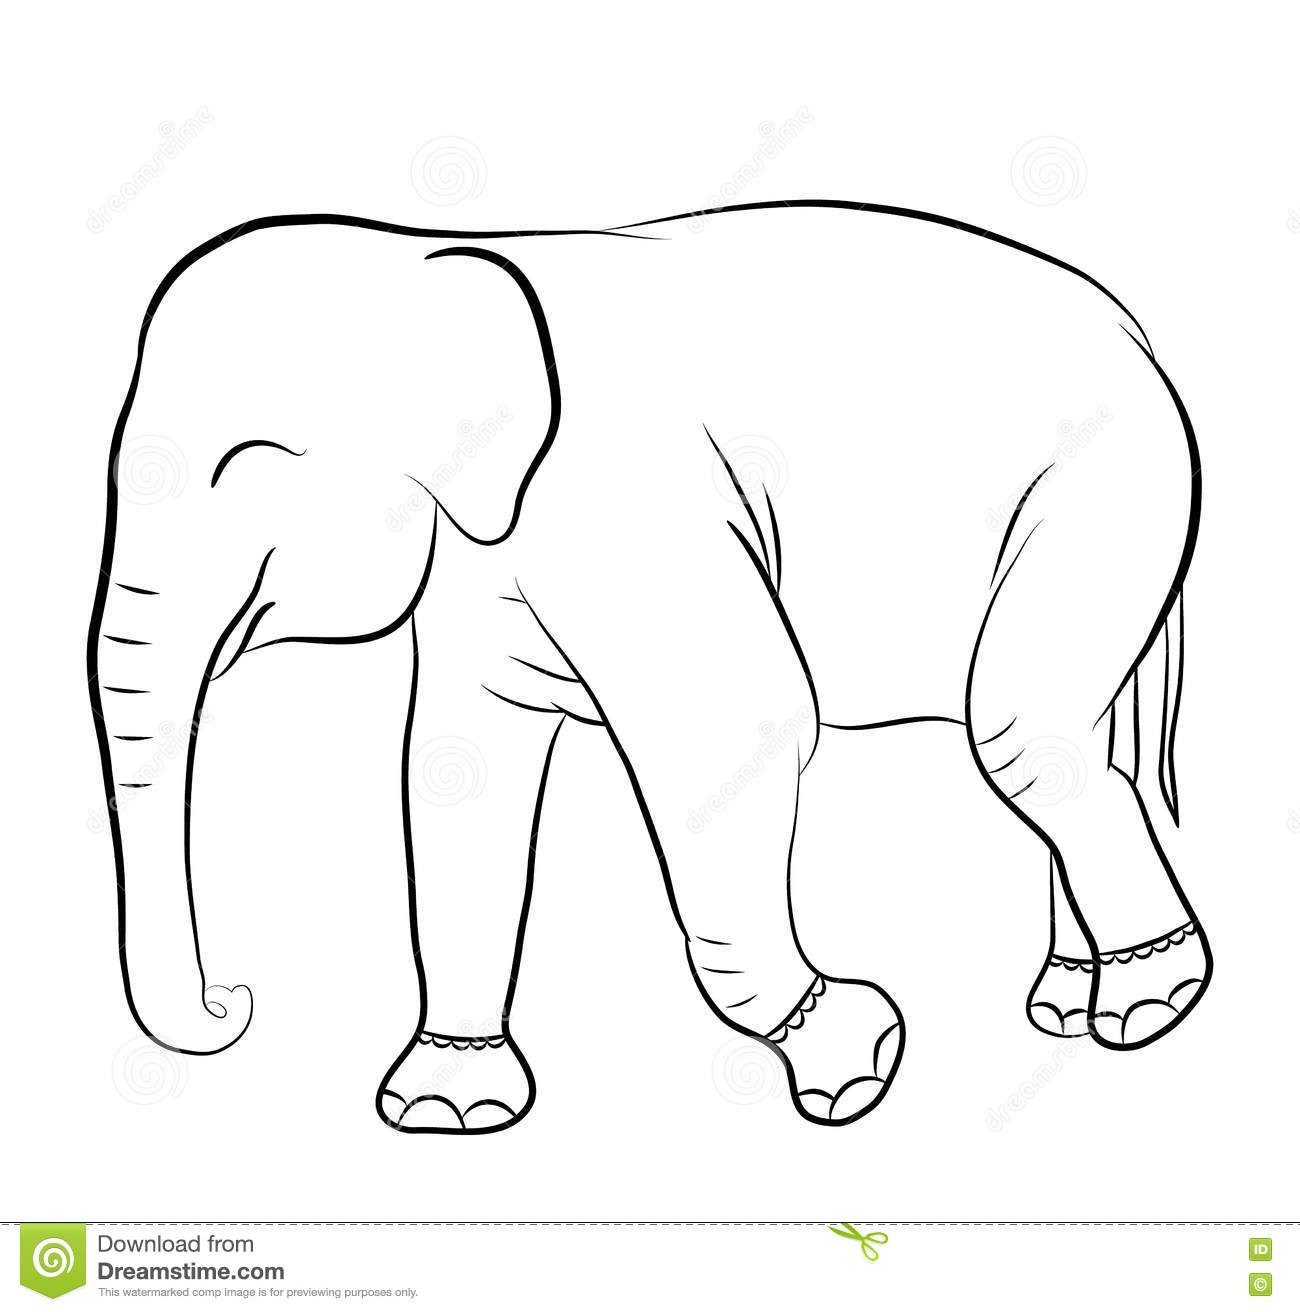 Elephant Silhouette For Coloring Book Stock Vector - Illustration of ...